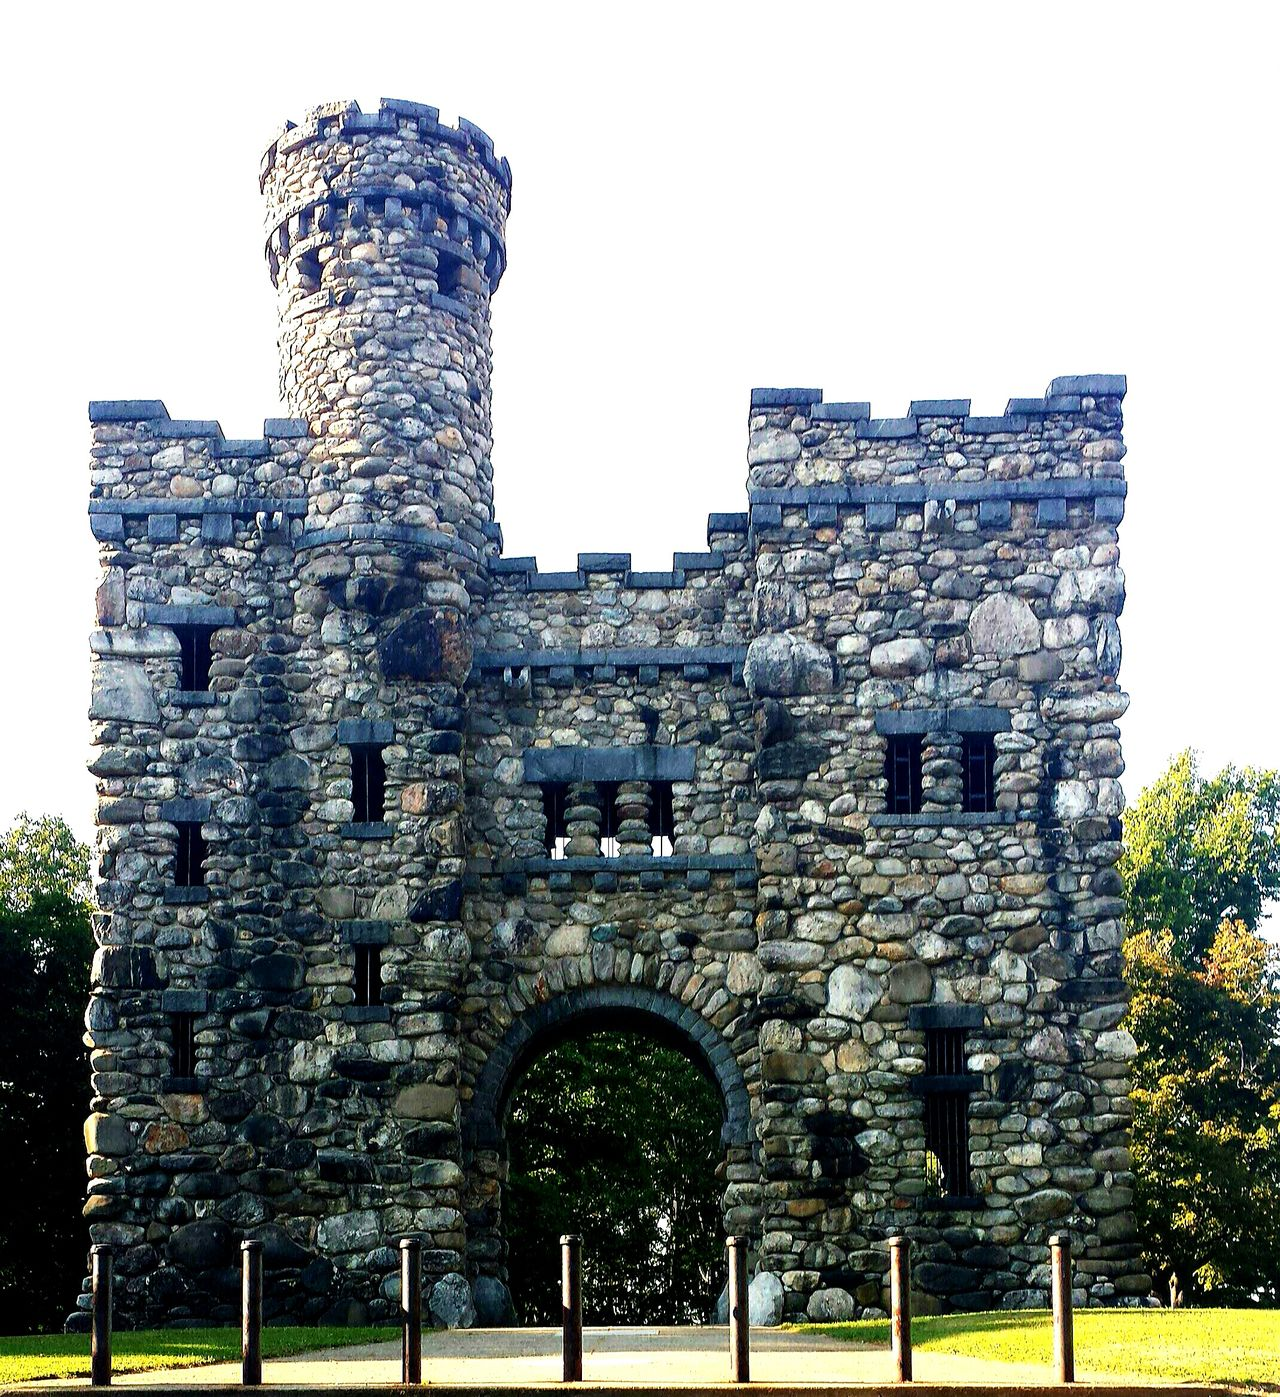 Wall - Building Feature No People Wall Stone Wall Stone - Object Rock - Object Rock Wall Architecture Tower Old Outdoors